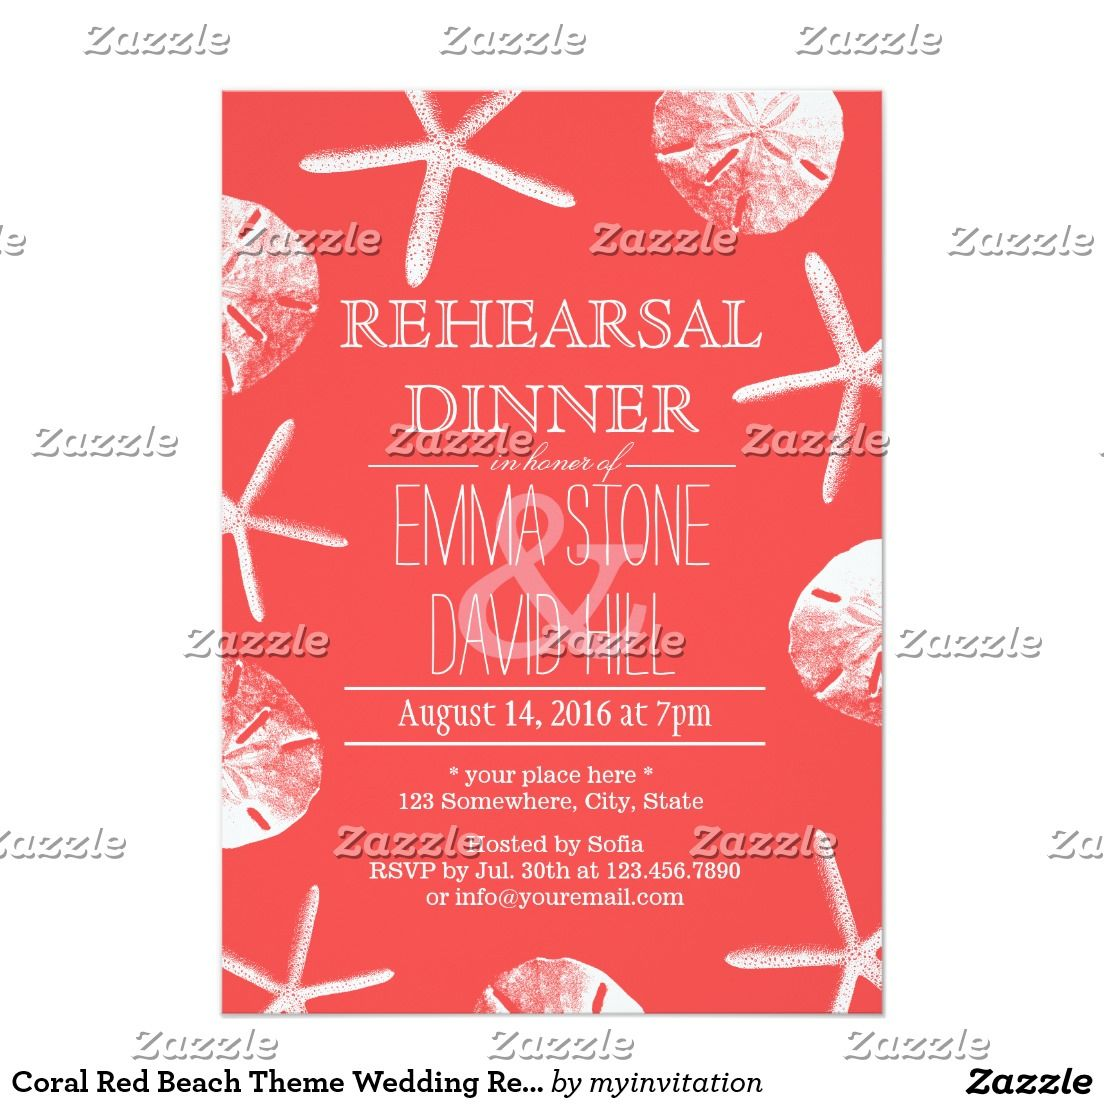 Coral Red Beach Theme Wedding Rehearsal Dinner Invitation ...